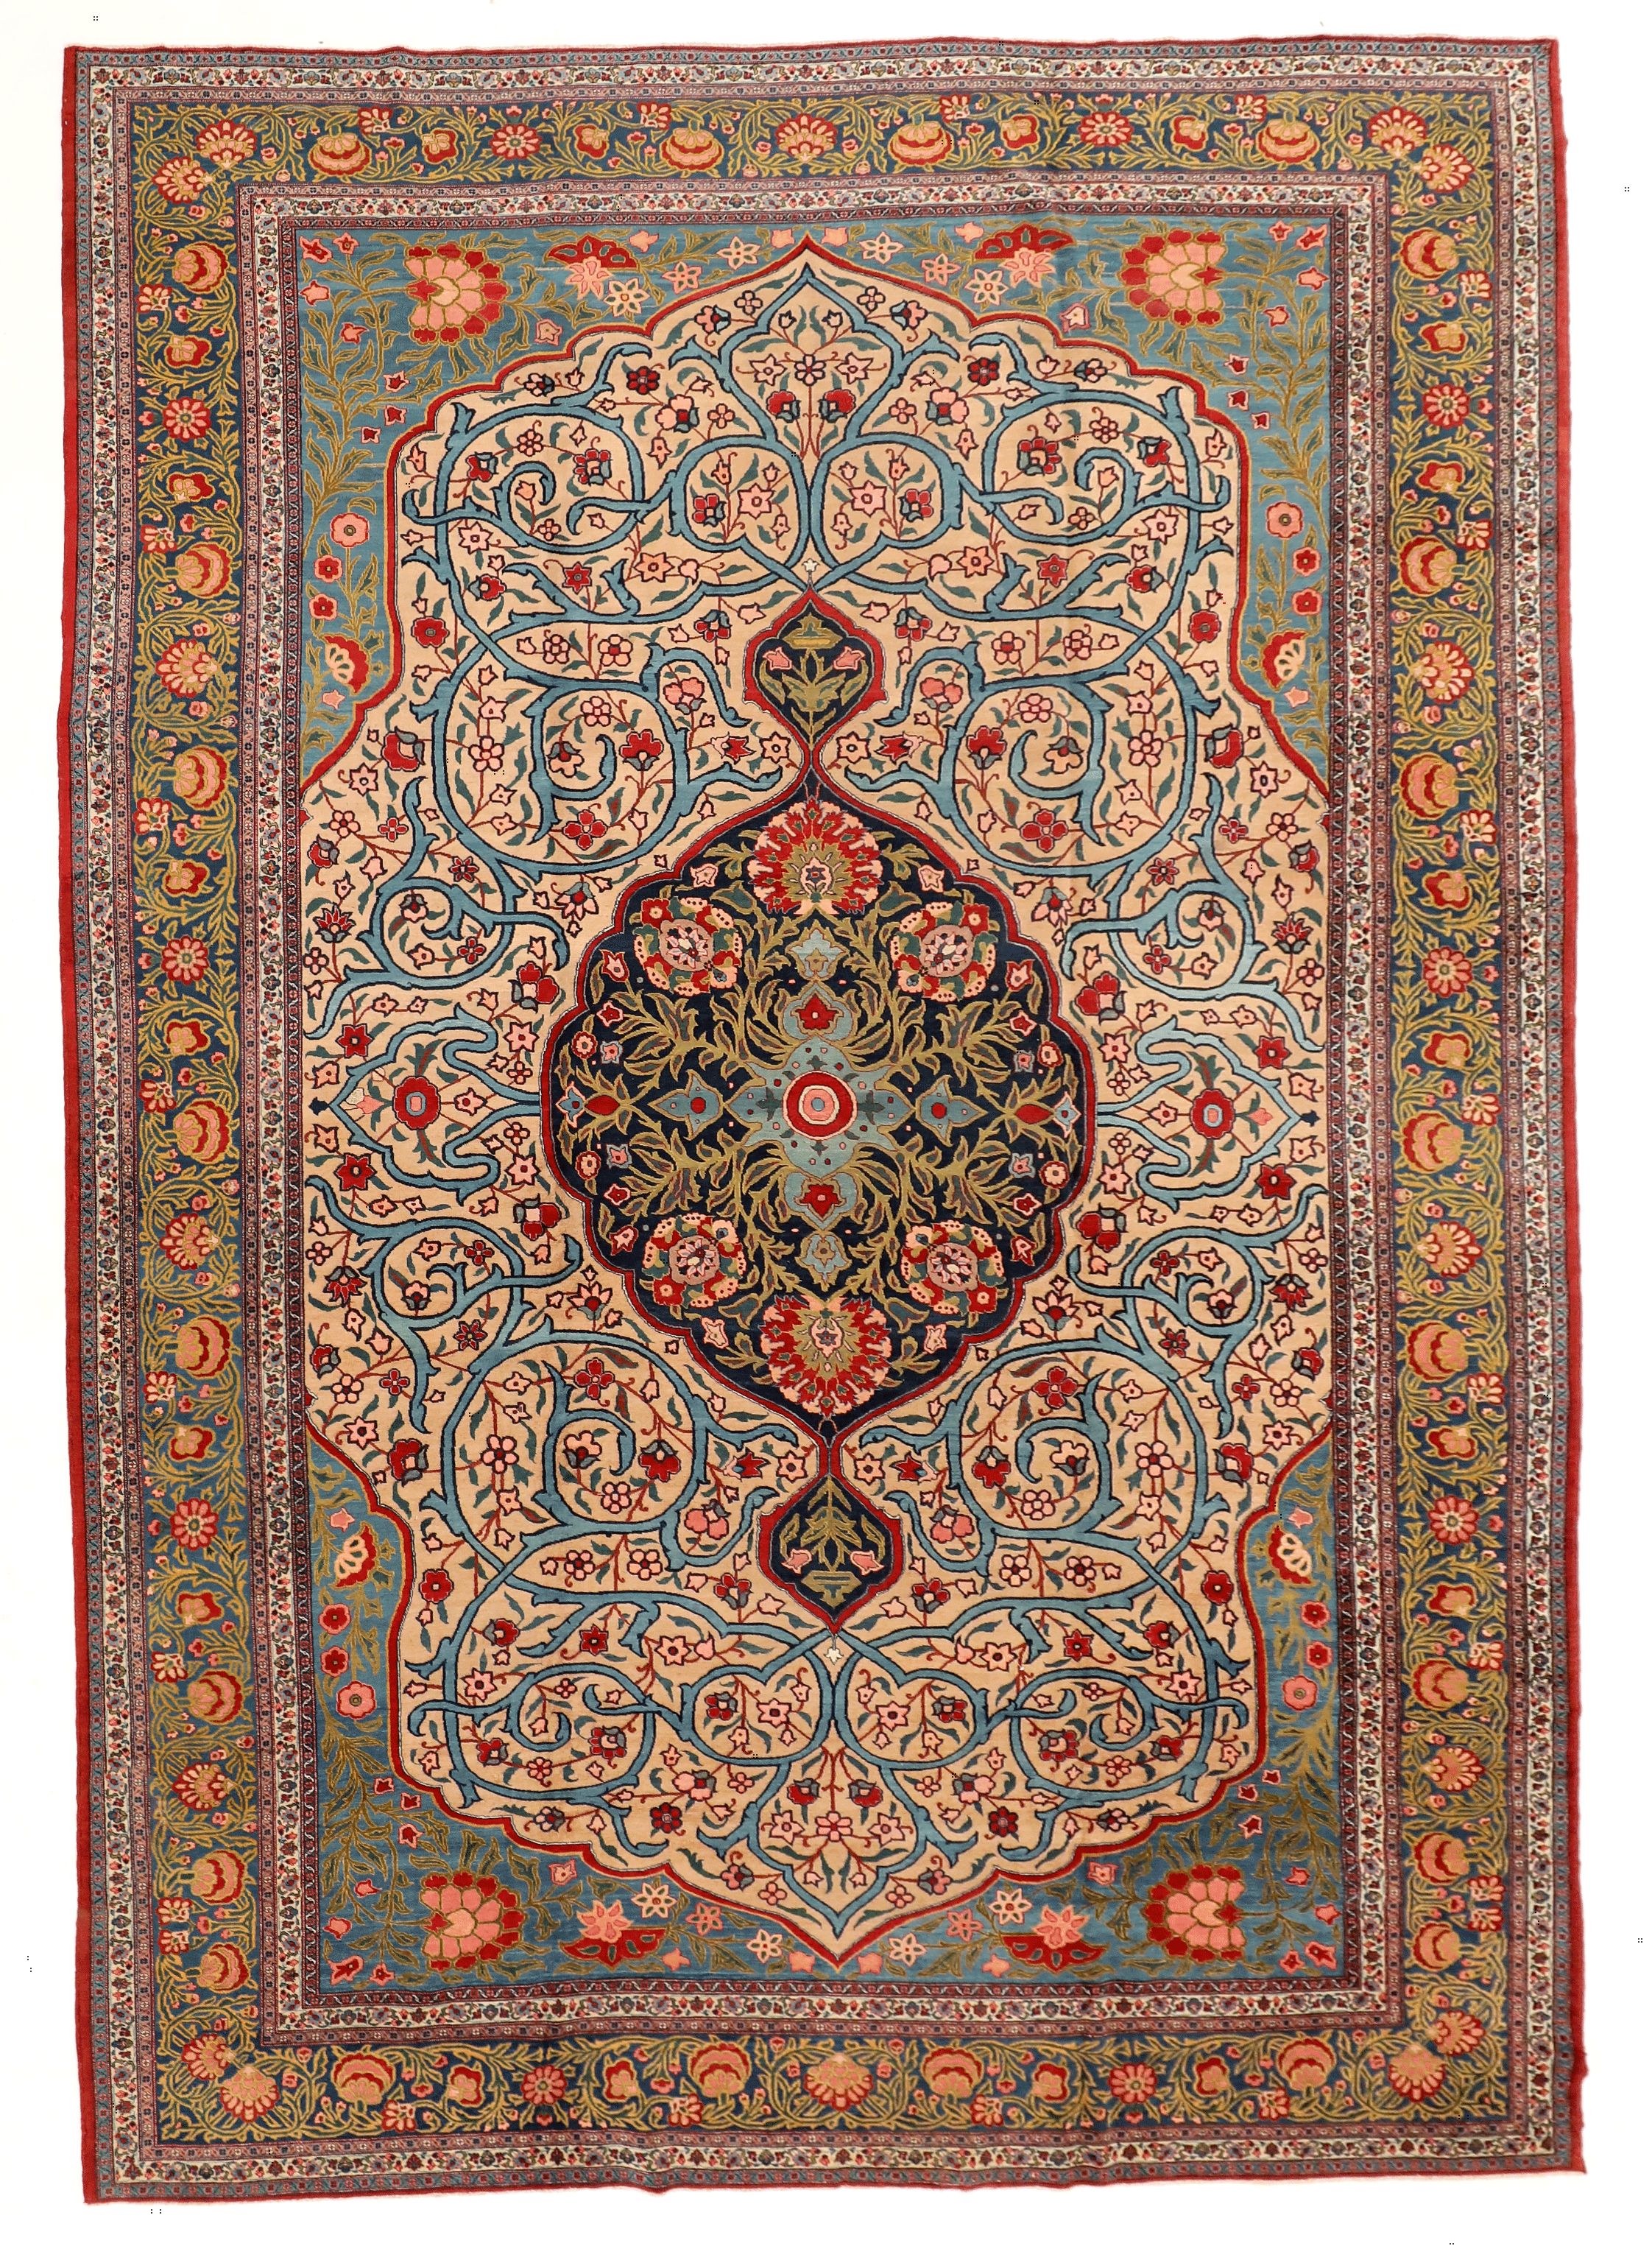 Antique Khoy Persian Carpet In Blue Red And Green Circa 1920 In 2020 Persian Carpet Rugs On Carpet Antiques